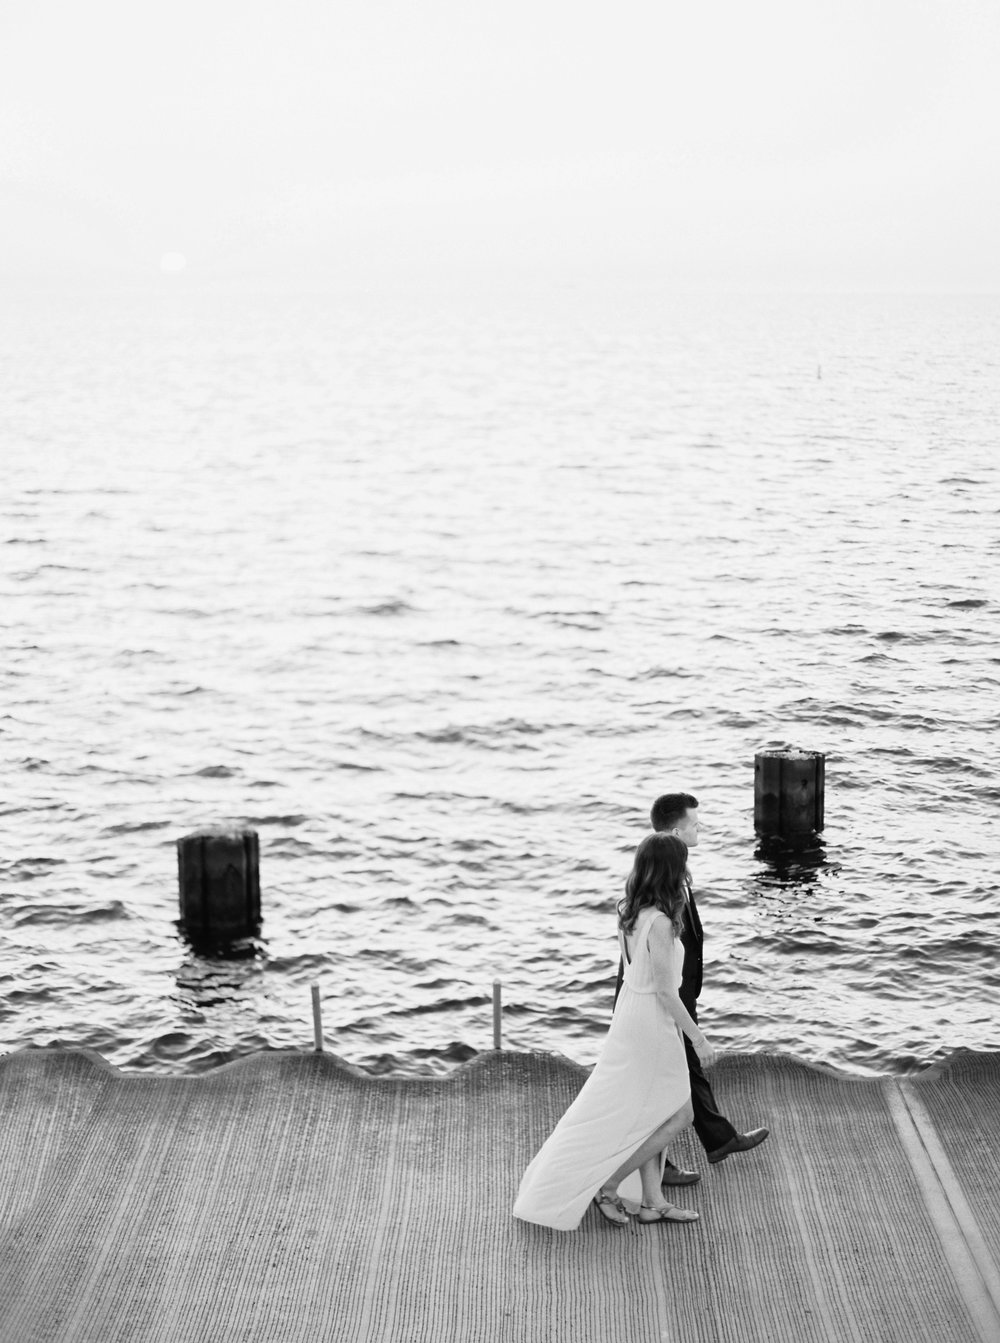 Kyle John l Fine Art Wedding Photography l Chicago, Copenhagen, California, New York, Destination l Blog l Nathalie and Colby_Lake Michigan_Sunrise Engagement_2